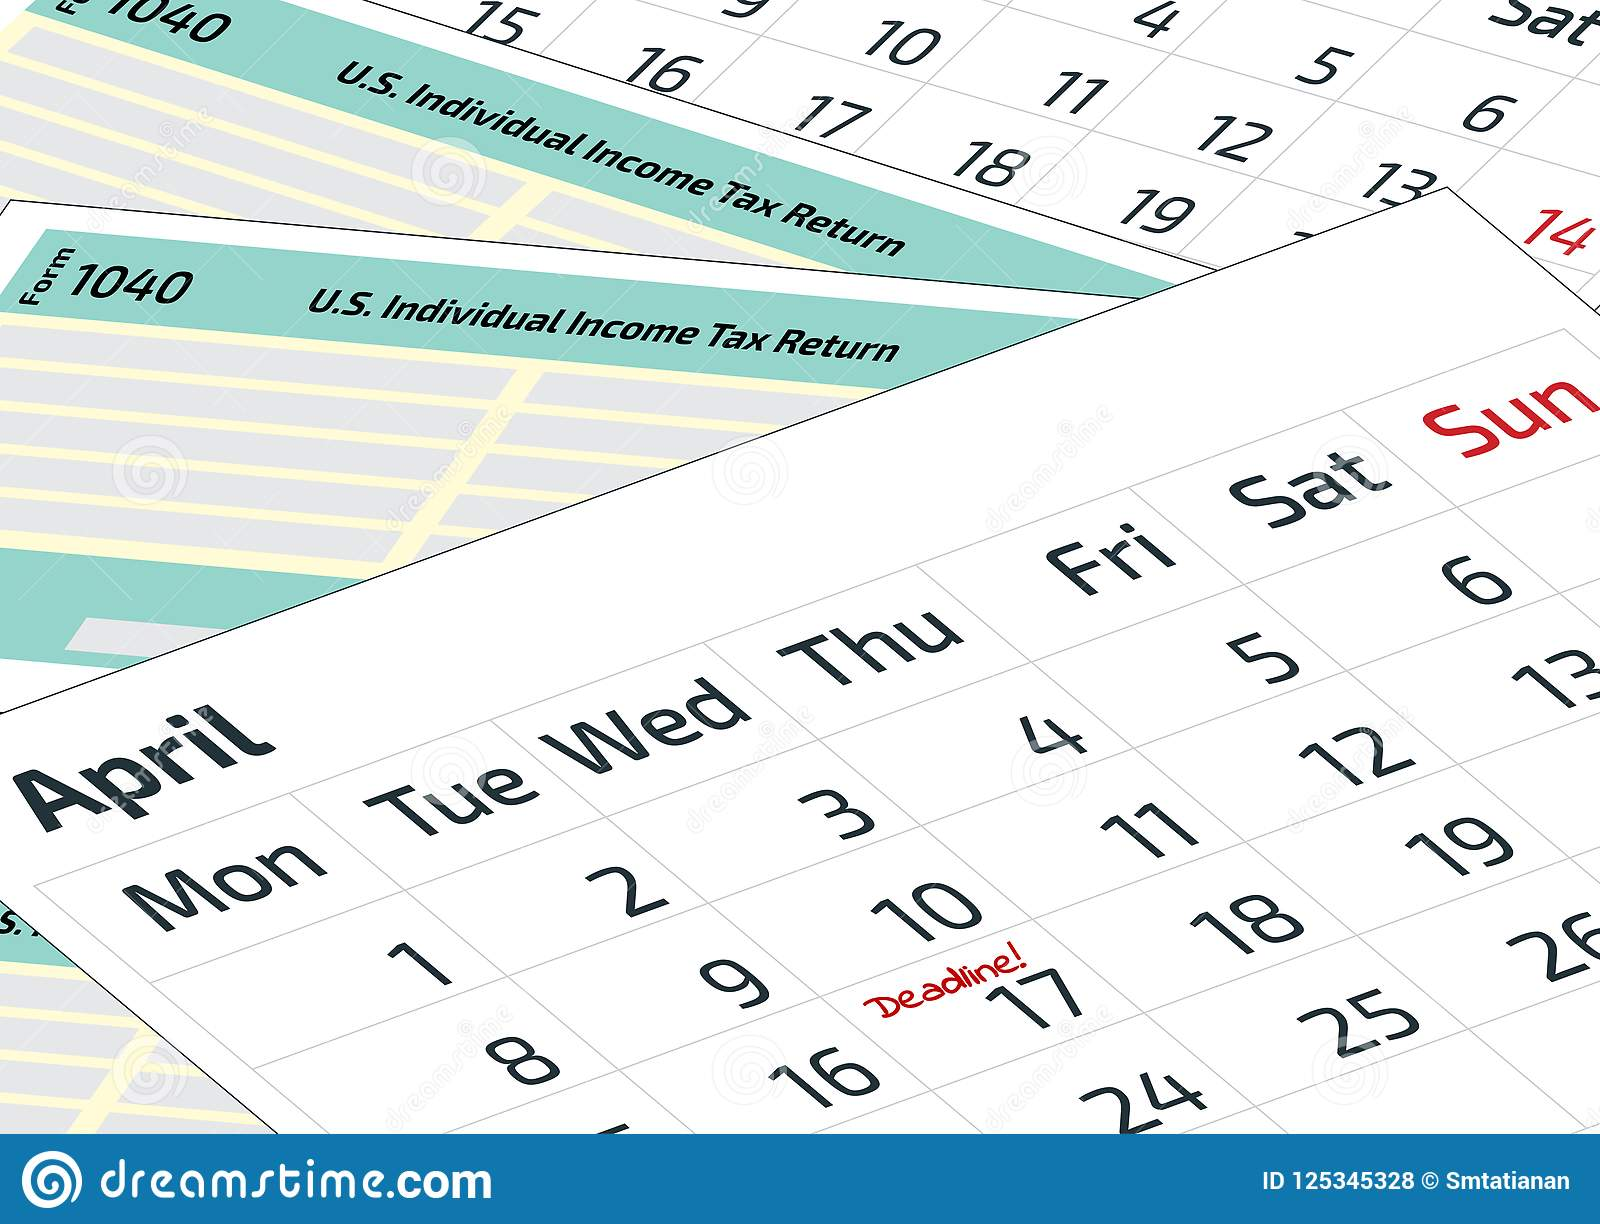 2020 Tax Calendar A Calendar And 1040 Income Tax Form. 2019, 2020 Tax Form 1040 And